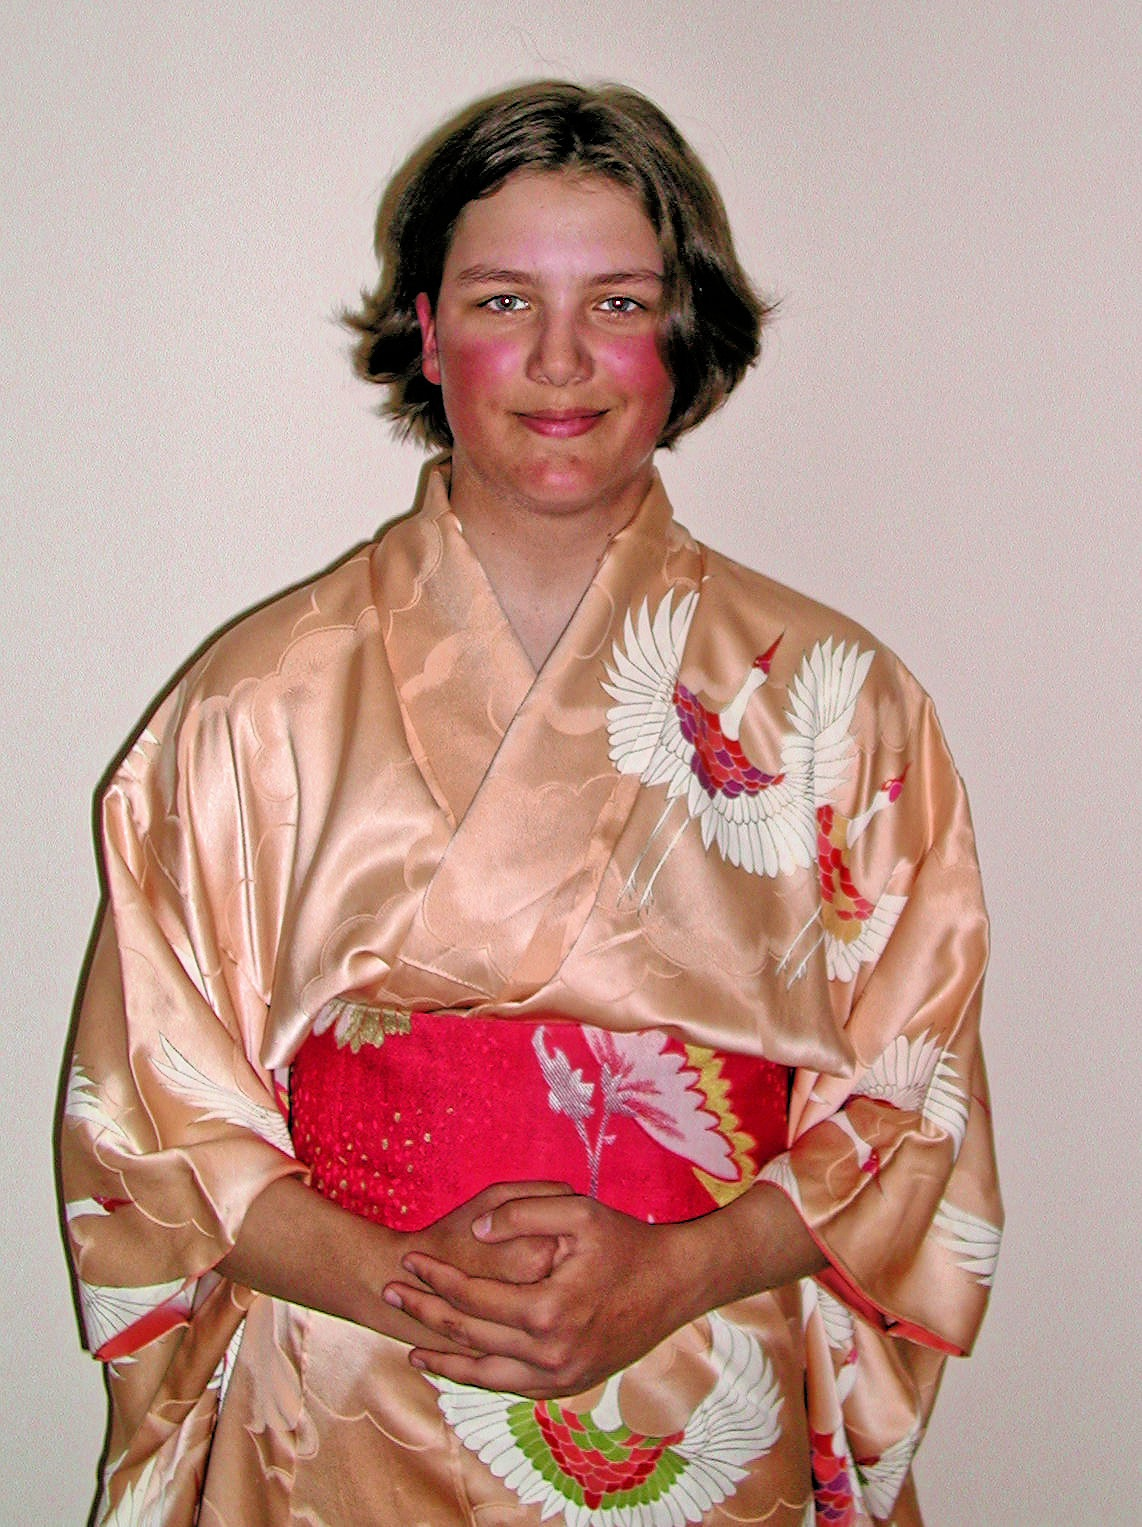 This should be yana-kimono-3.jpeg.  Is it missing?